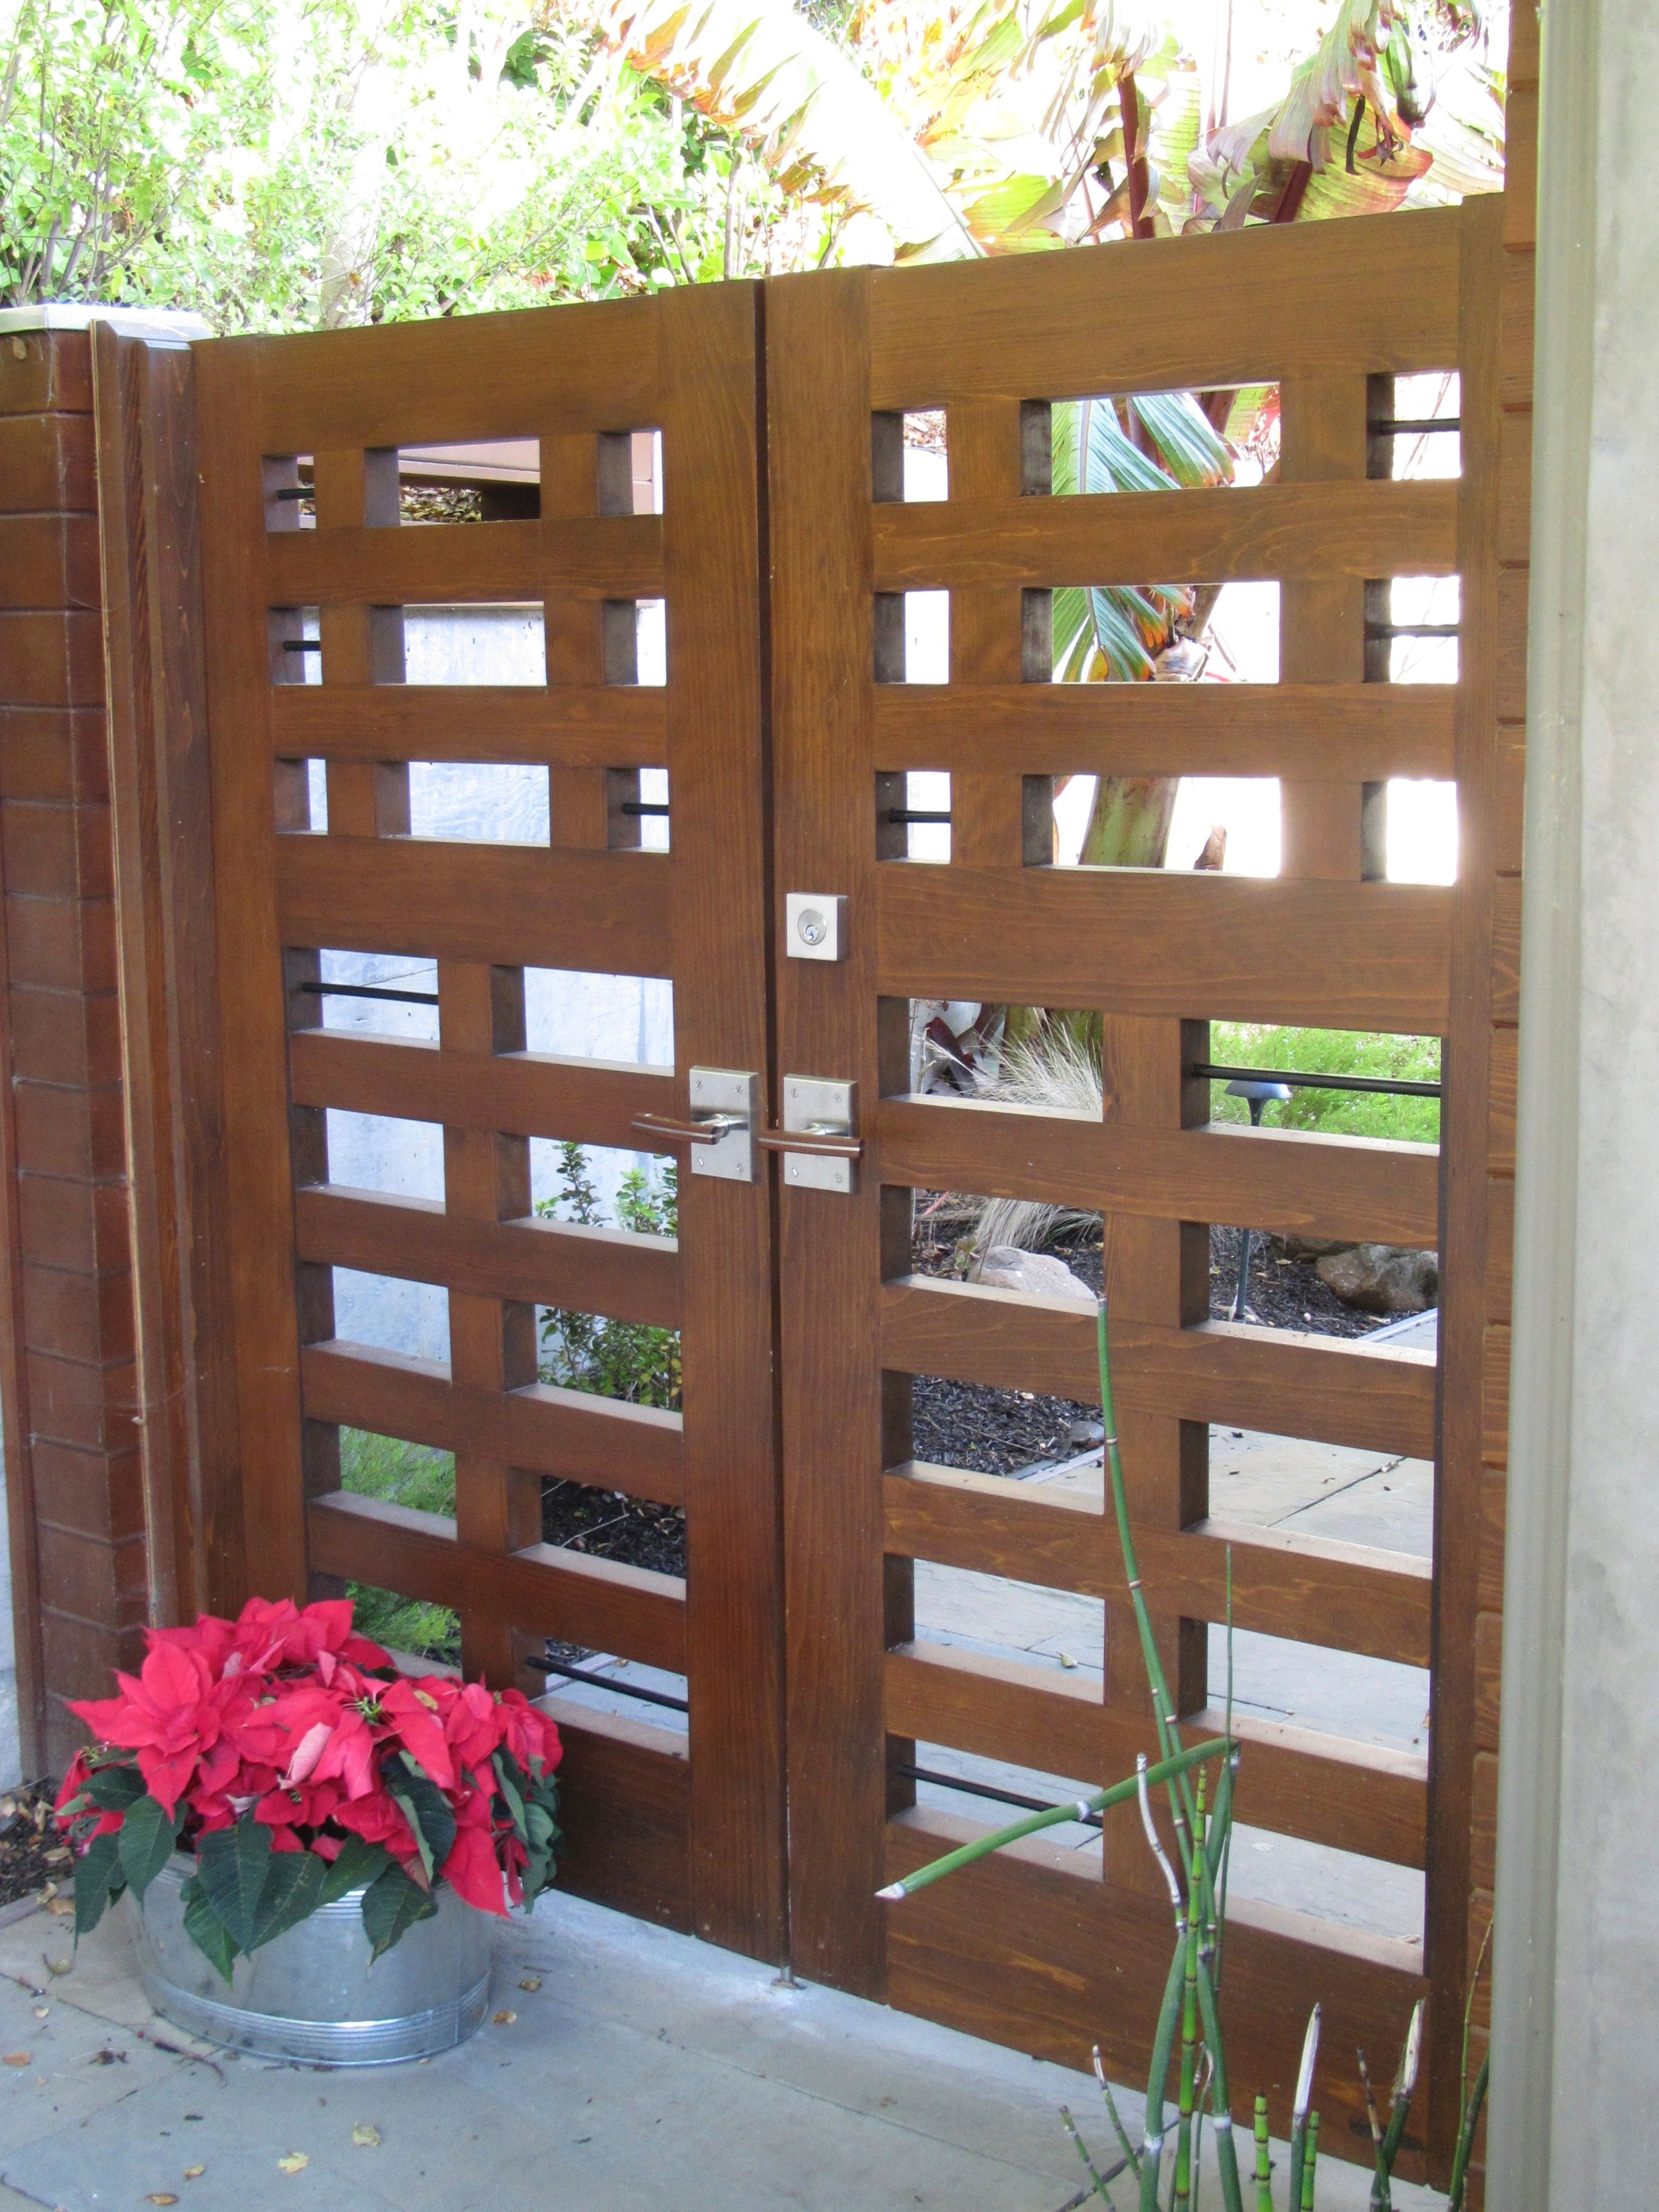 Double wooden gate in contemporary style in Tiburon, CA. Gate ... for Stainless Steel Main Gate With Aluminium Wood Color Design  111ane